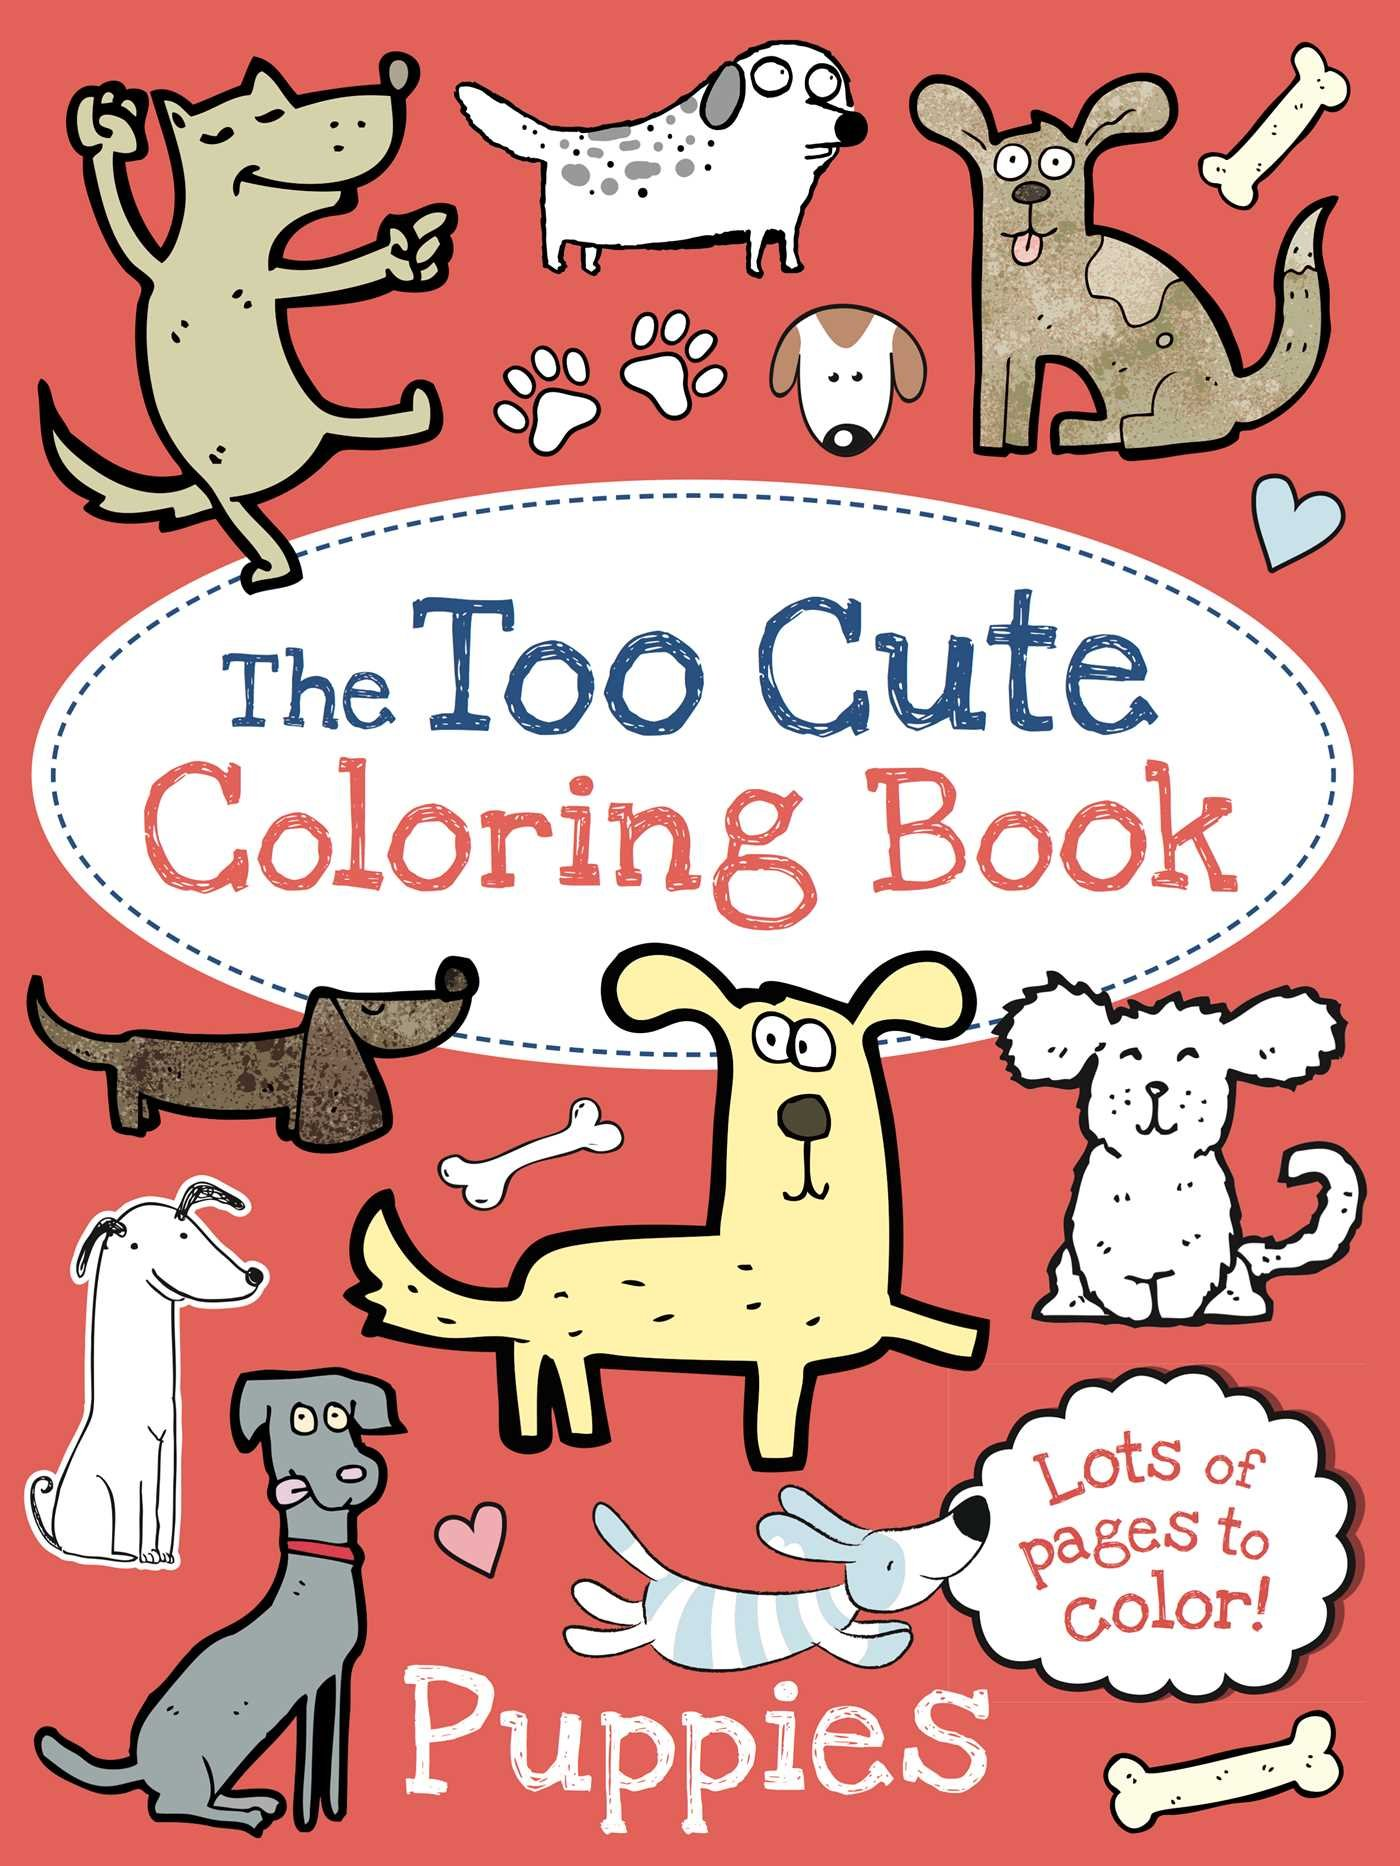 Too Cute Coloring Book Puppies product image